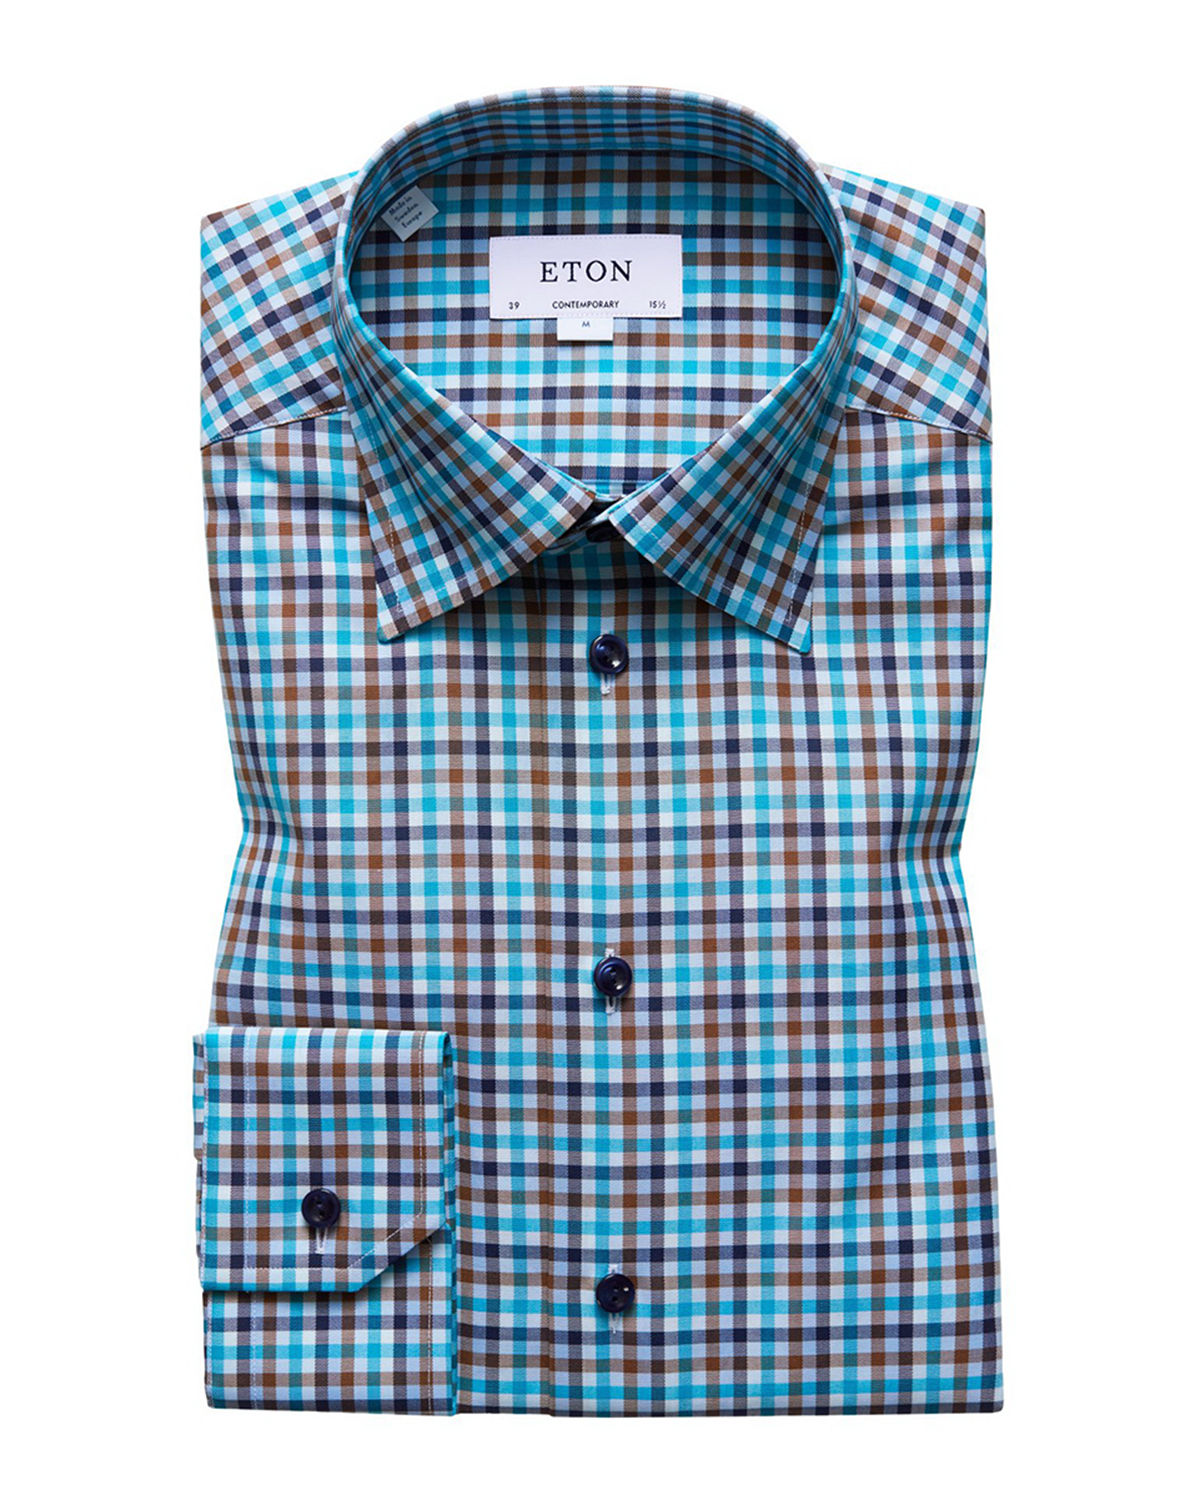 Men's Contemporary-Fit Plaid Dress Shirt